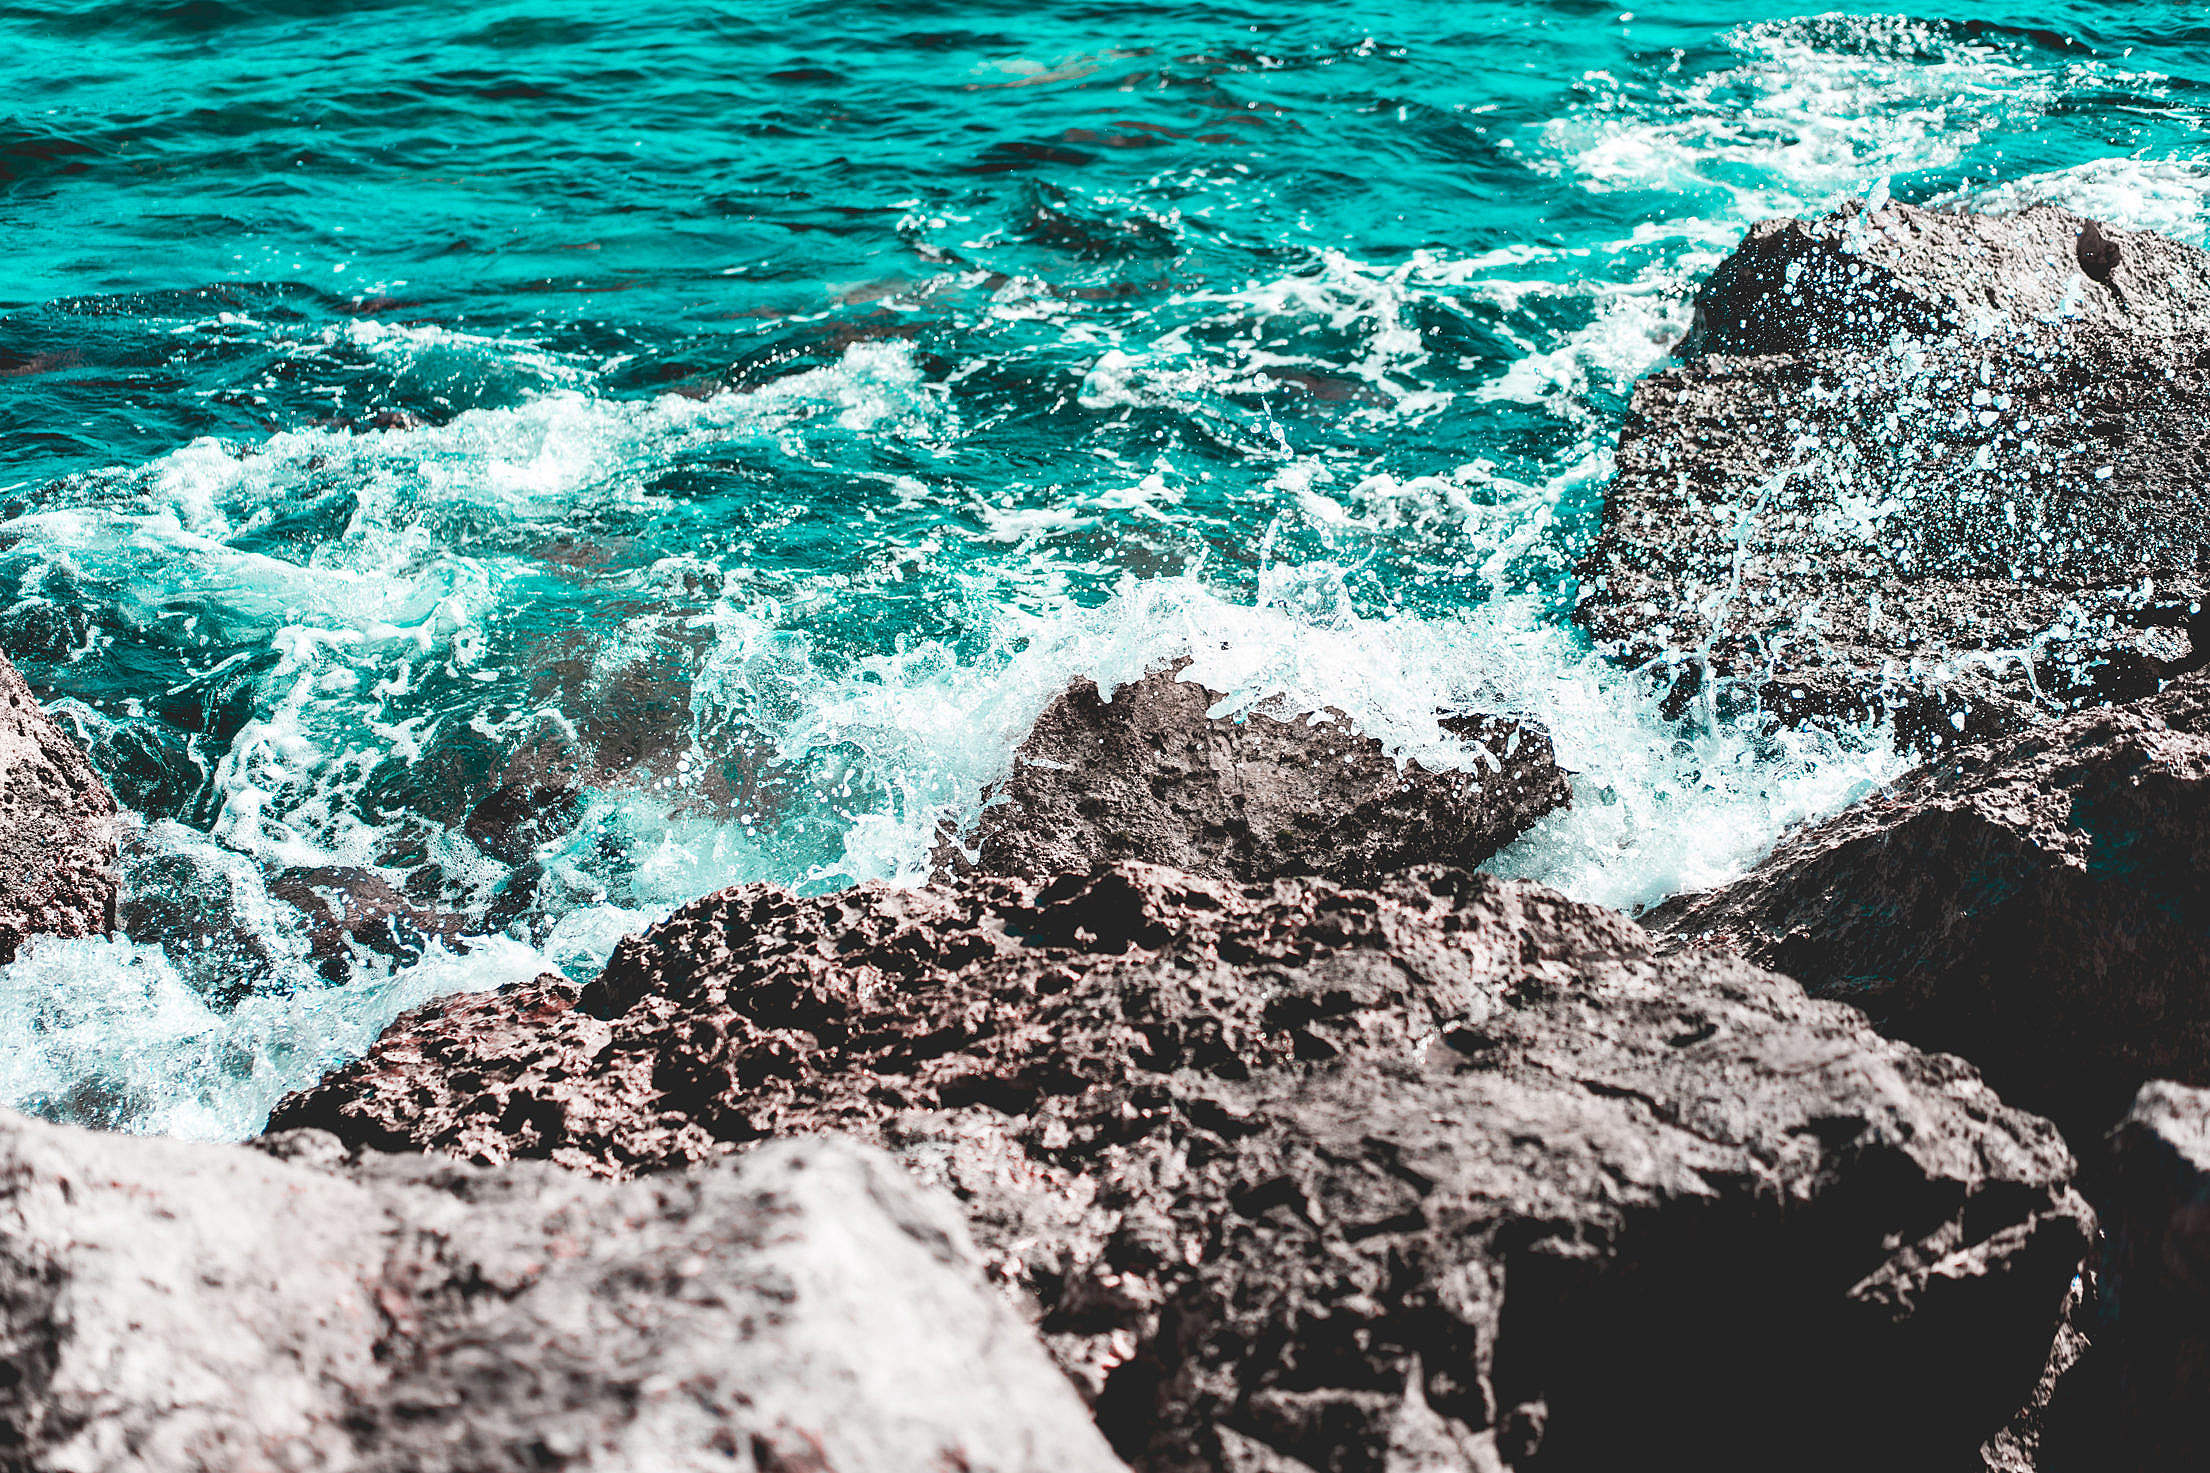 Abstract Infrared Photography of Sea Water Splash on the Rocks Free Stock Photo